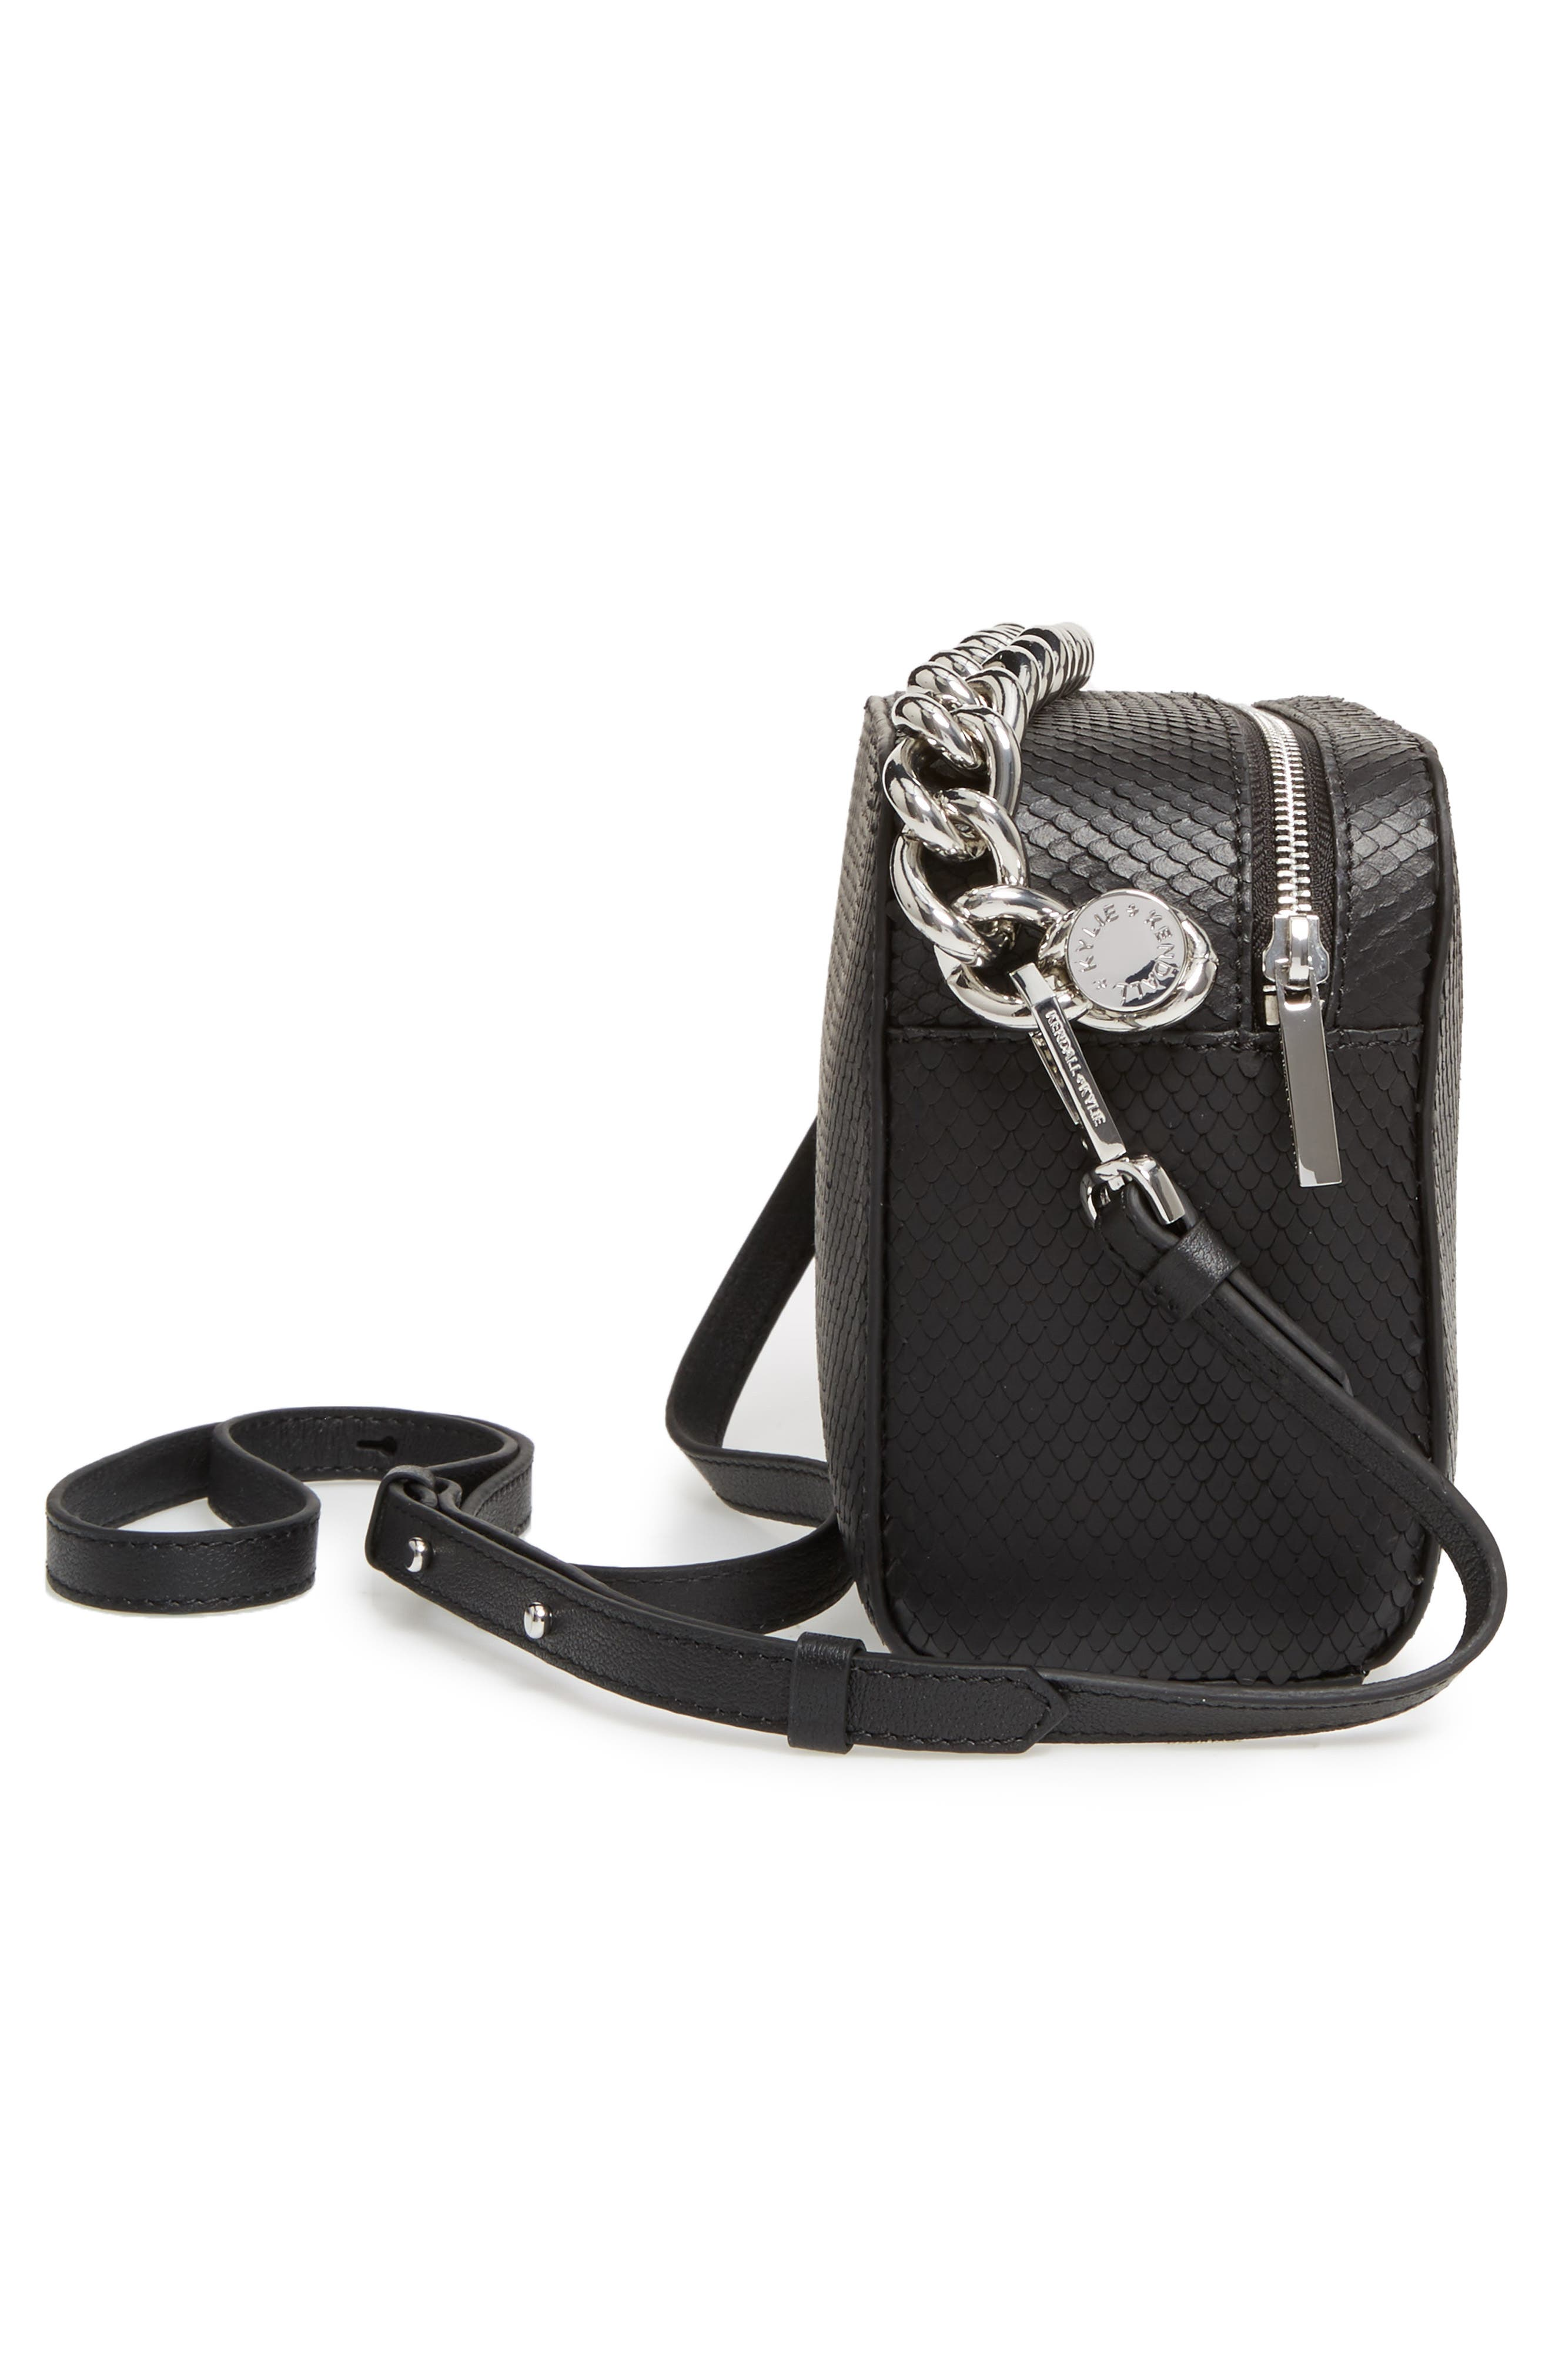 Lucy Leather Crossbody Bag,                             Alternate thumbnail 5, color,                             001